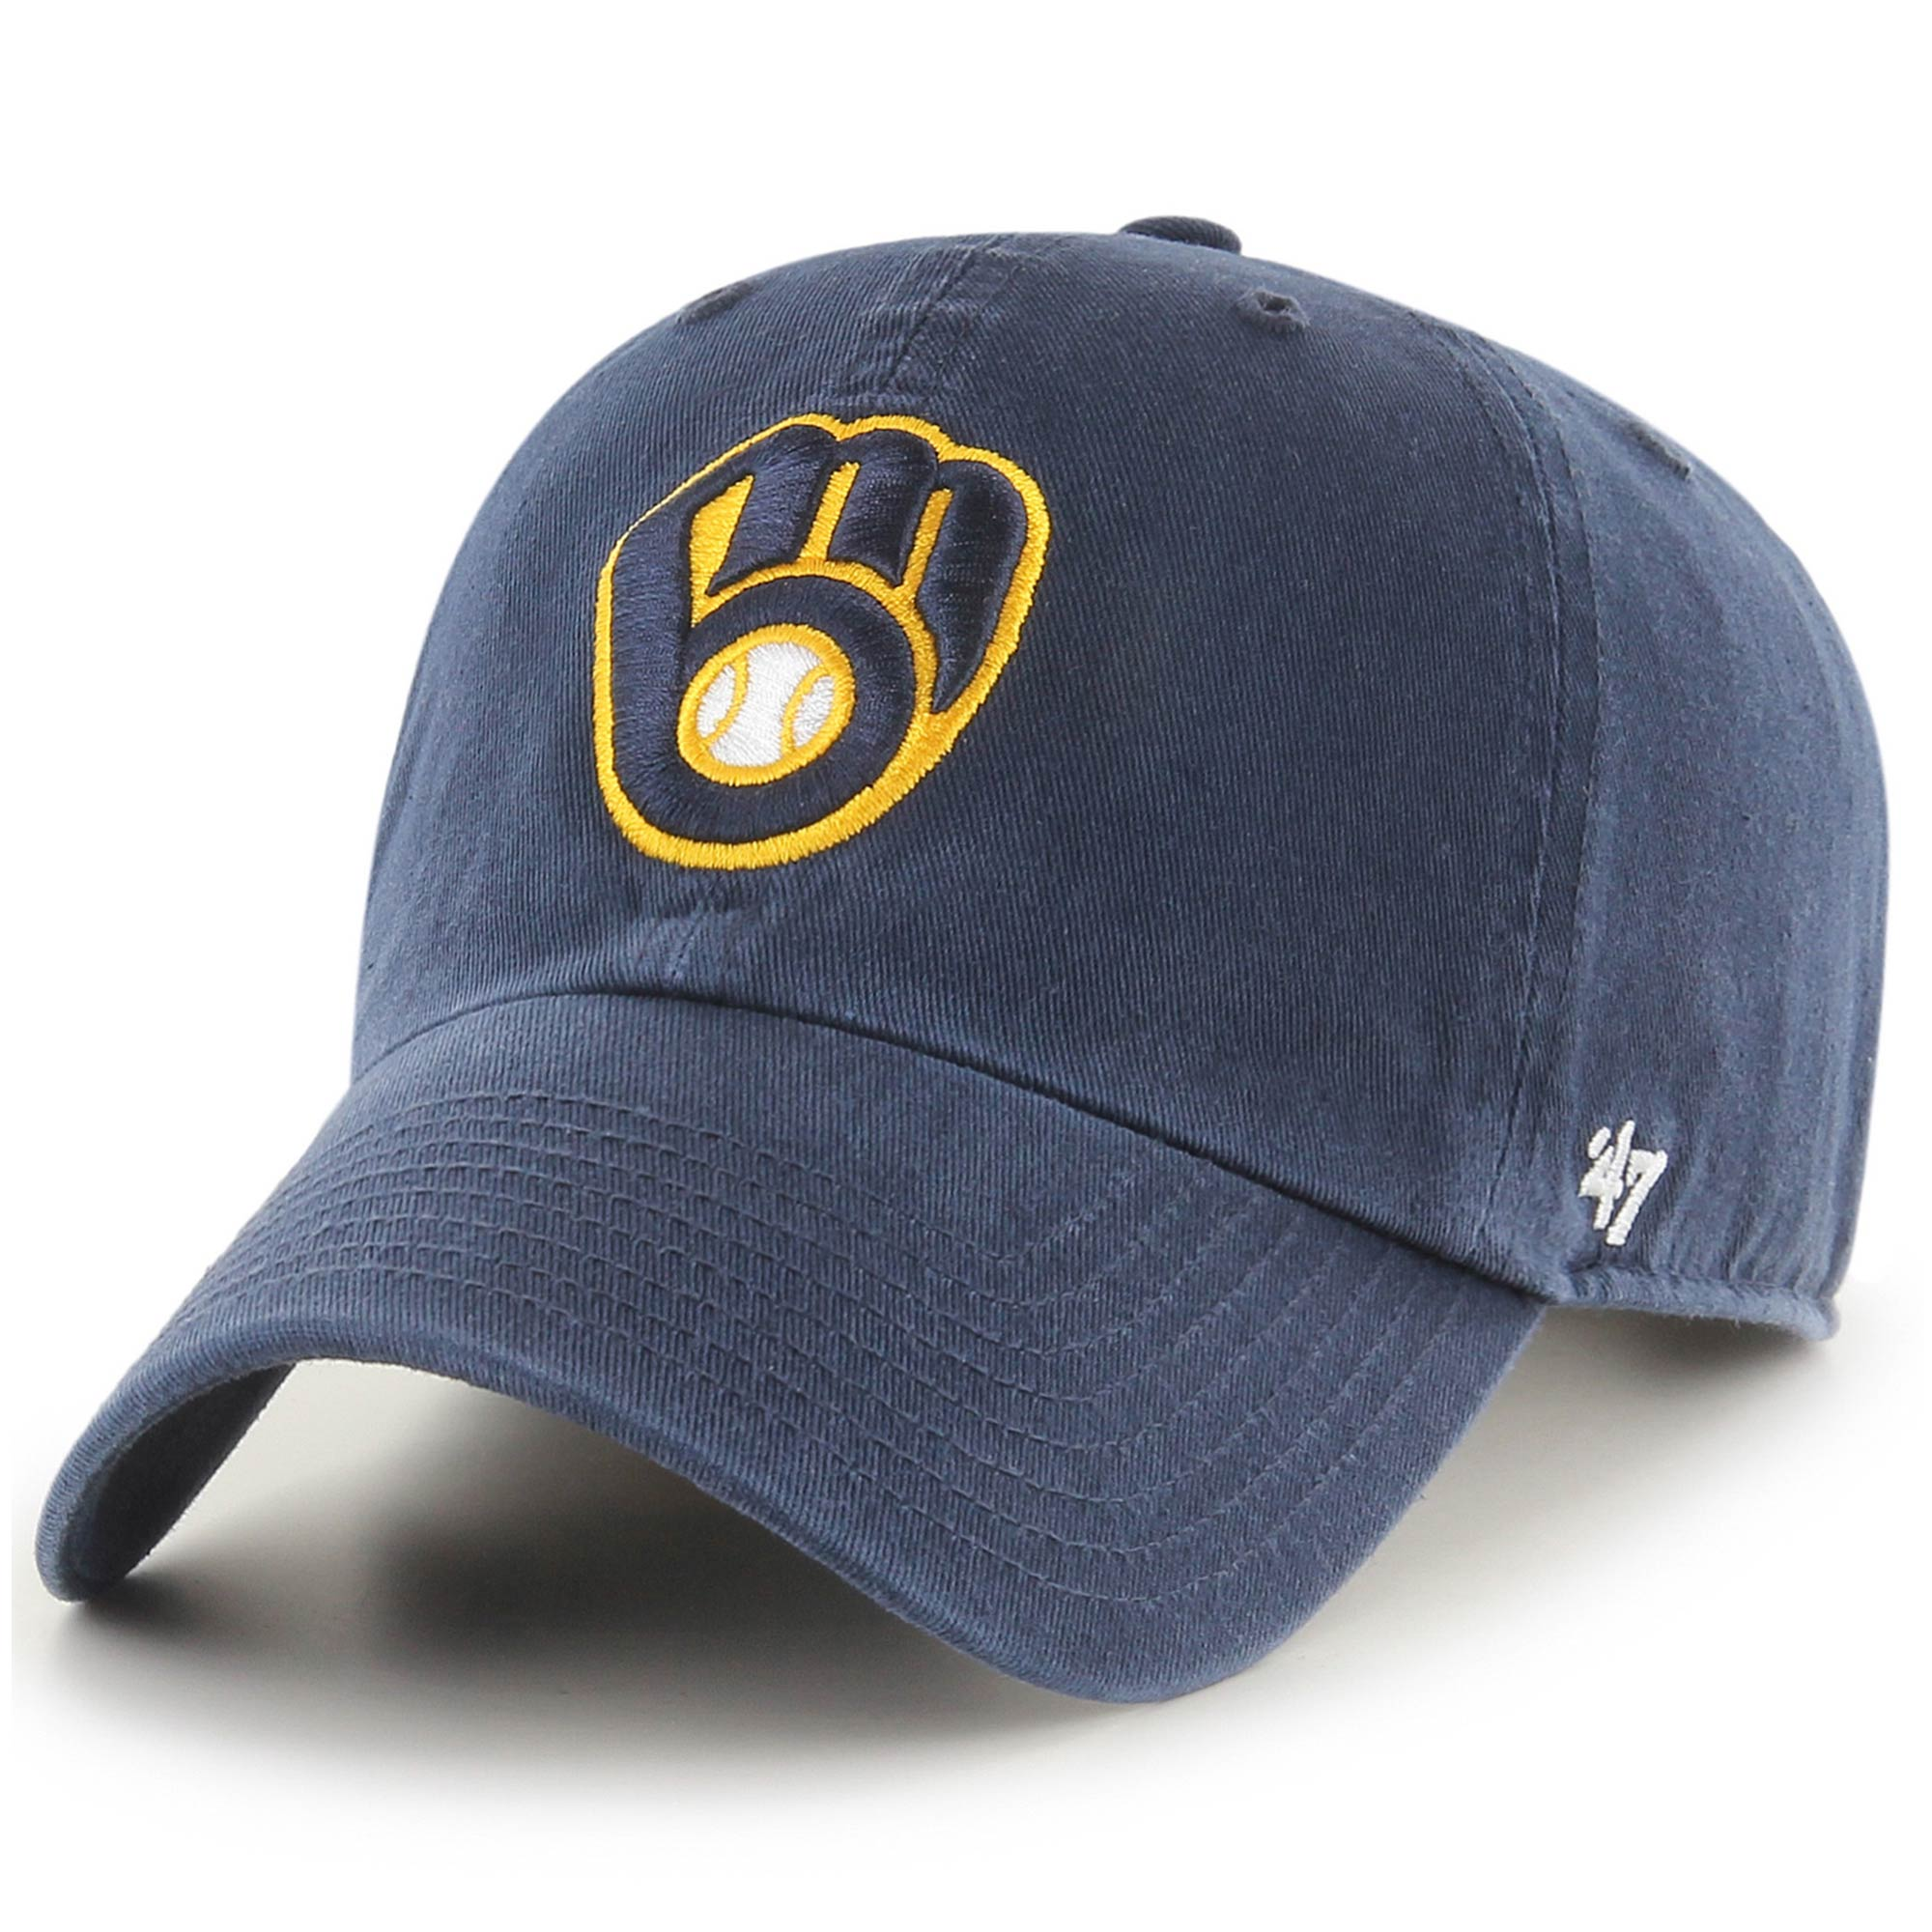 Milwaukee Brewers '47 Home Clean Up Adjustable Hat - Navy